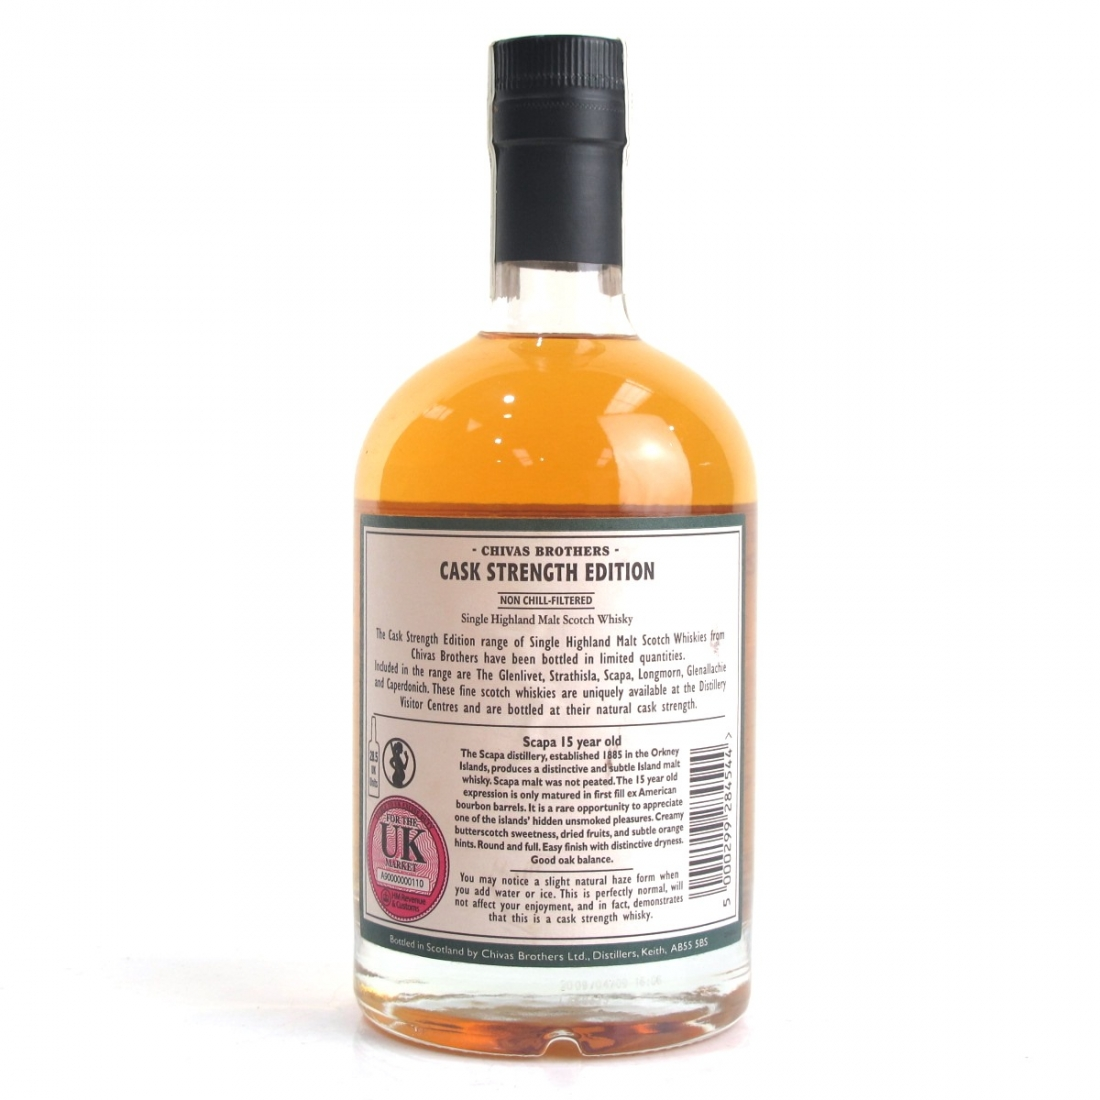 Scapa 1993 Cask Strength 15 Year Old Batch #002